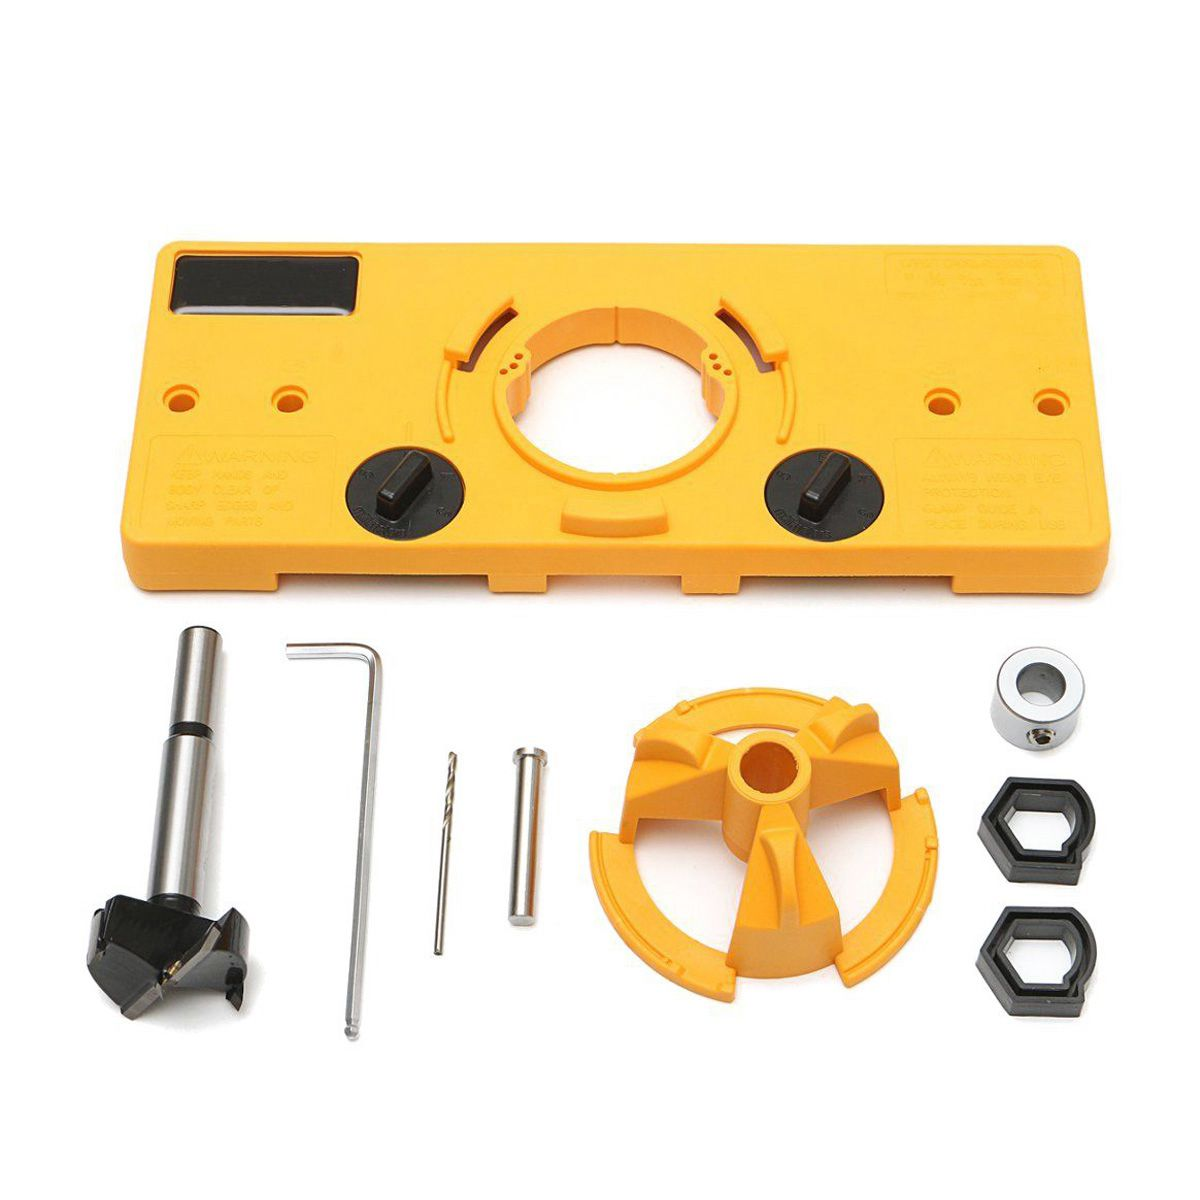 35mm Cup Style Hinge Boring Jig Drill Guide Set Door Hole